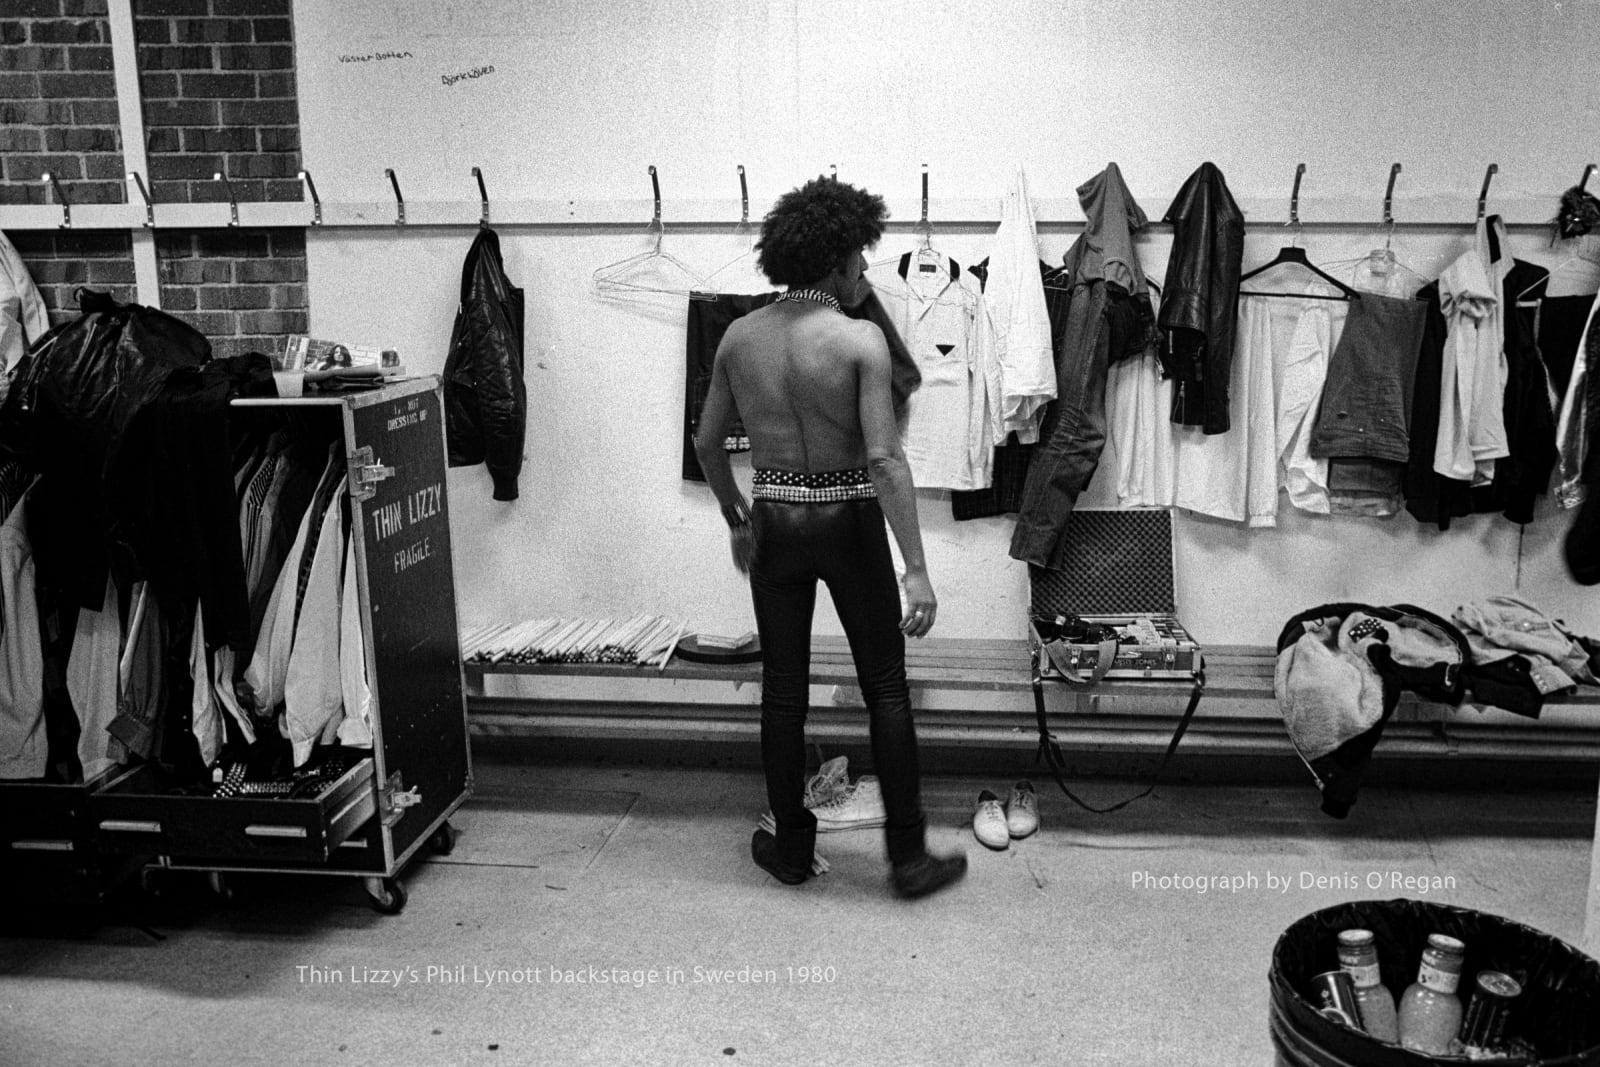 THIN LIZZY, Philip Lynott backstage Sweden, 1981